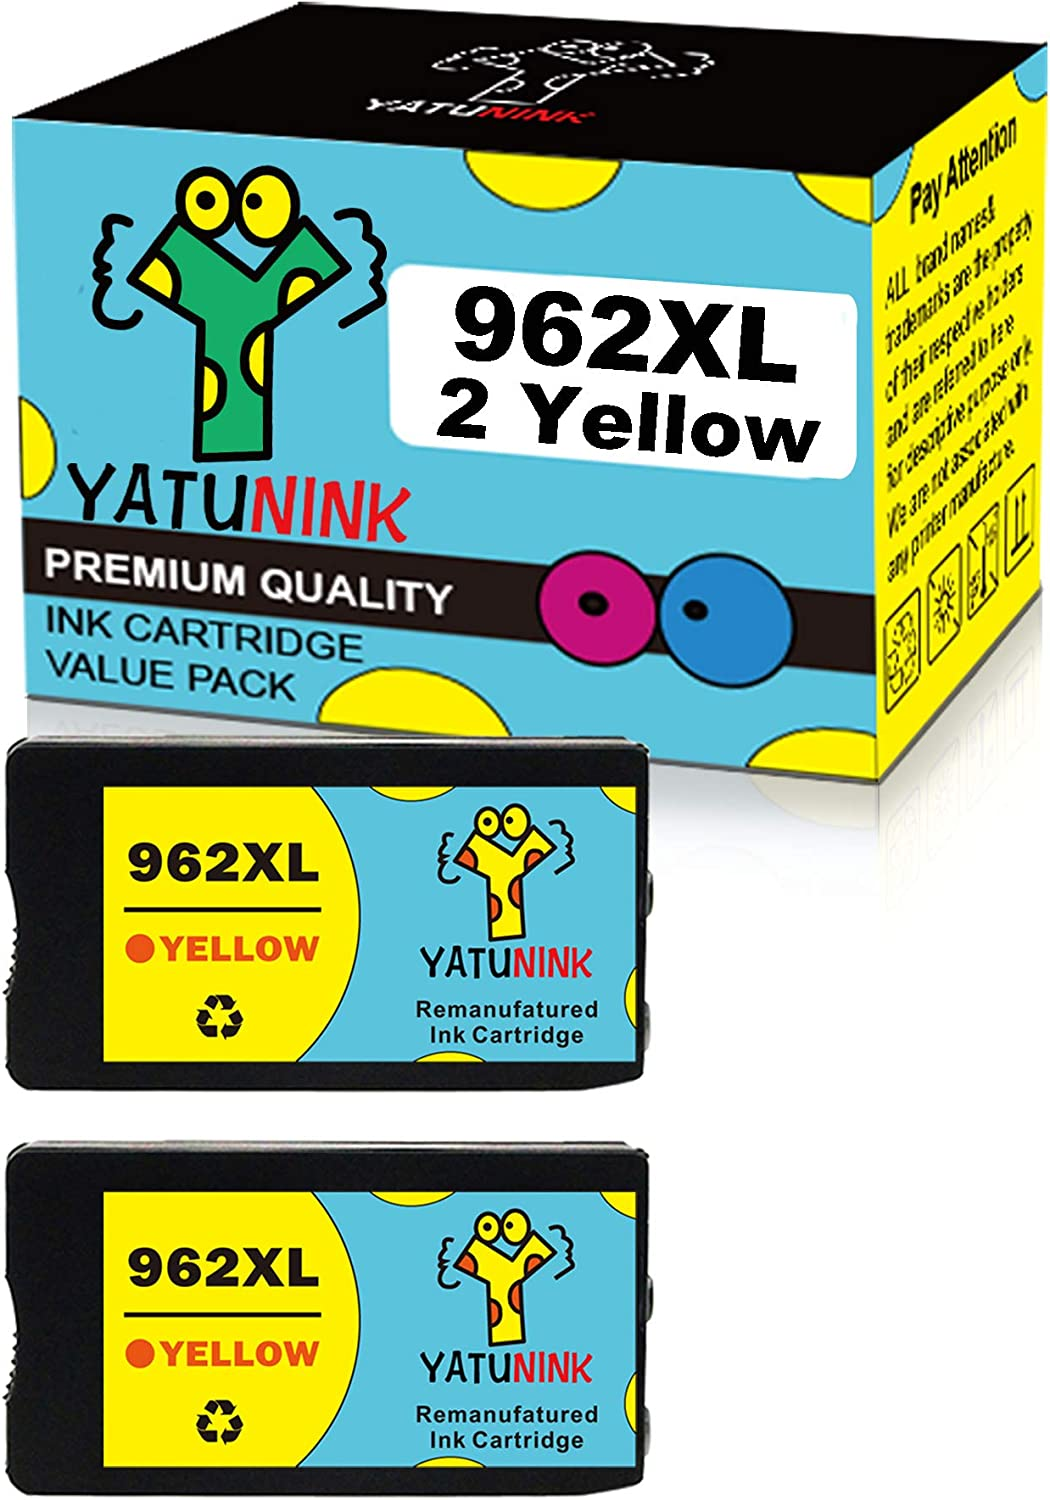 YATUNINK Remanufactured Ink Cartridge Replacement for HP 962XL 962 XL YeLLow Ink Cartridges Combo Pack 3JA02AN for HP OfficeJet Pro 9010 Officejet 9012 Officejet 9015 9018 9020 9025 Printer (2 YeLLow)